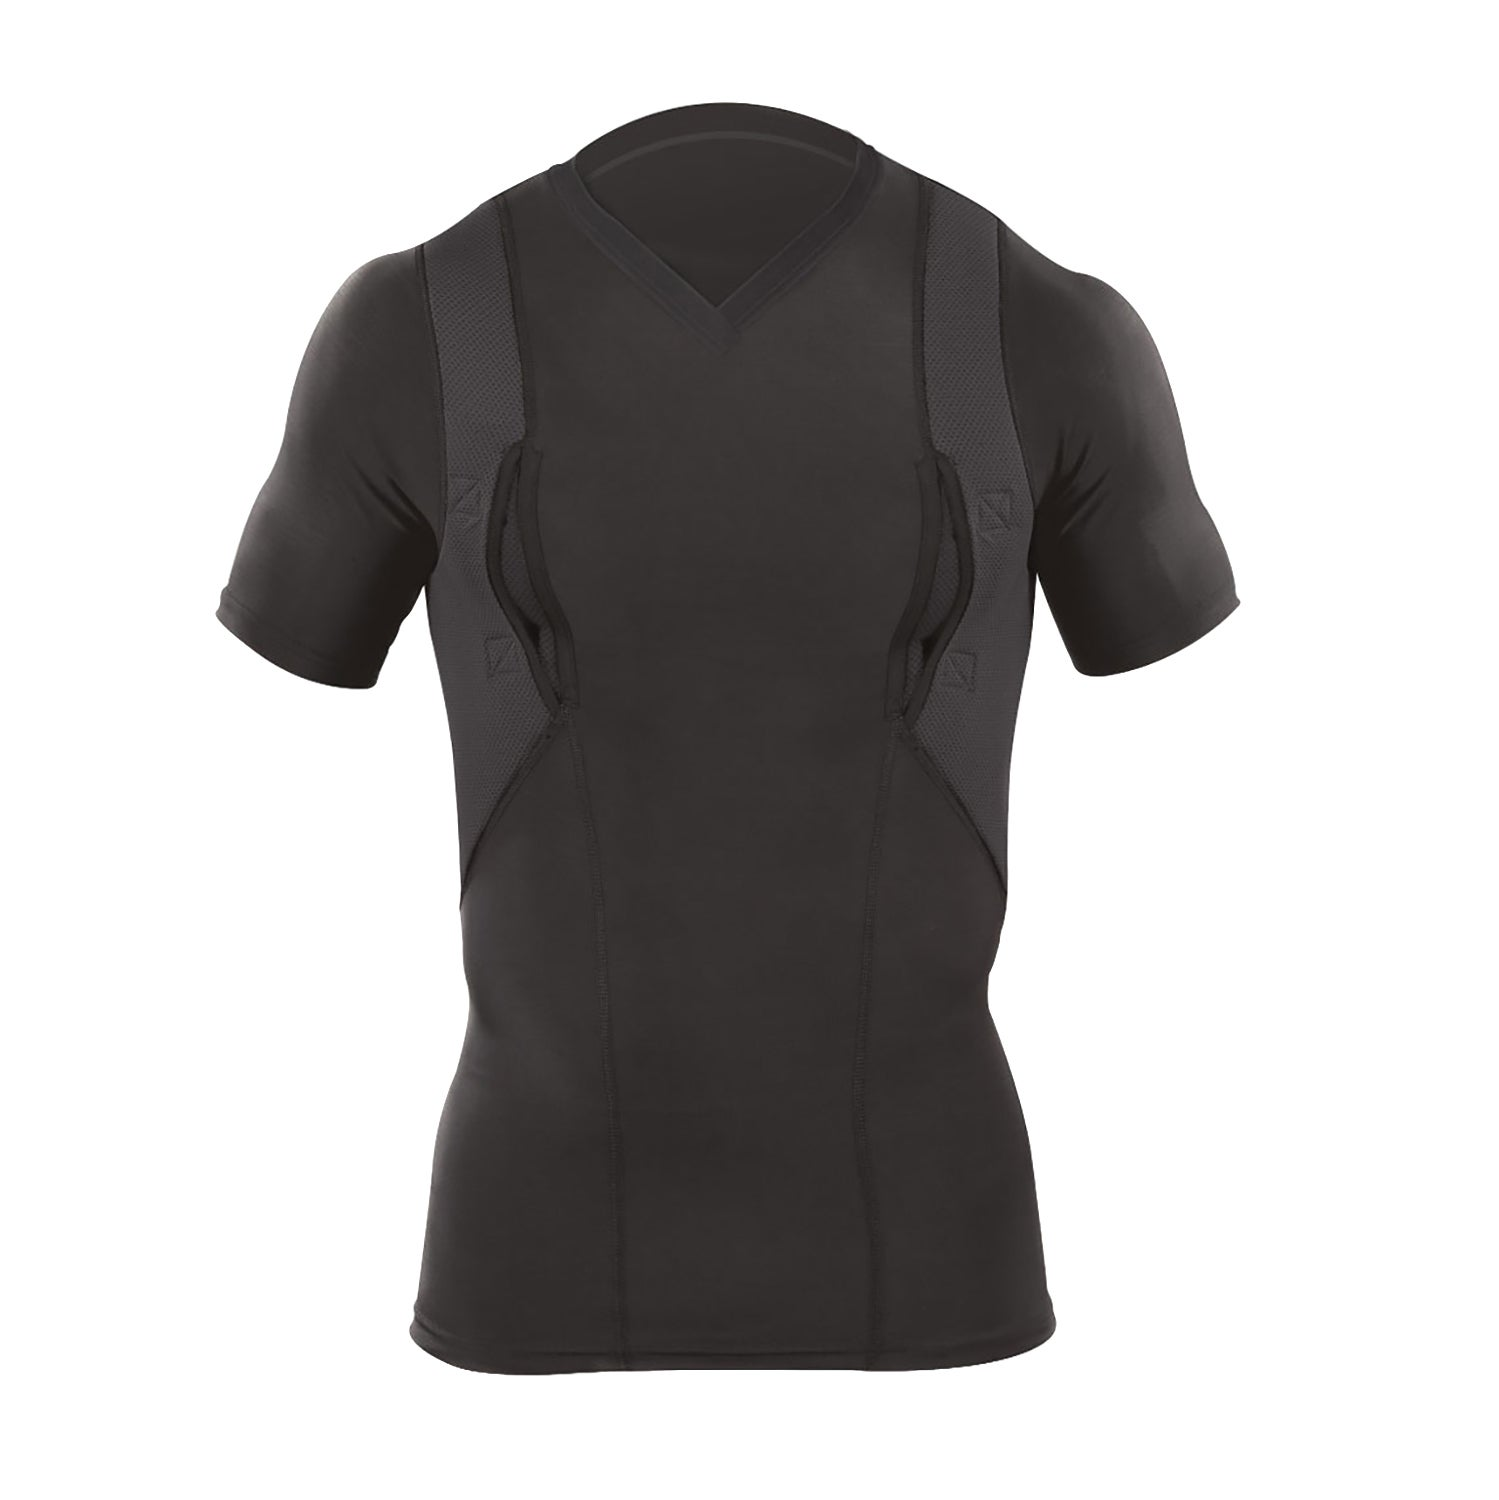 5.11 Tactical V Neck Holster Podstawowy top